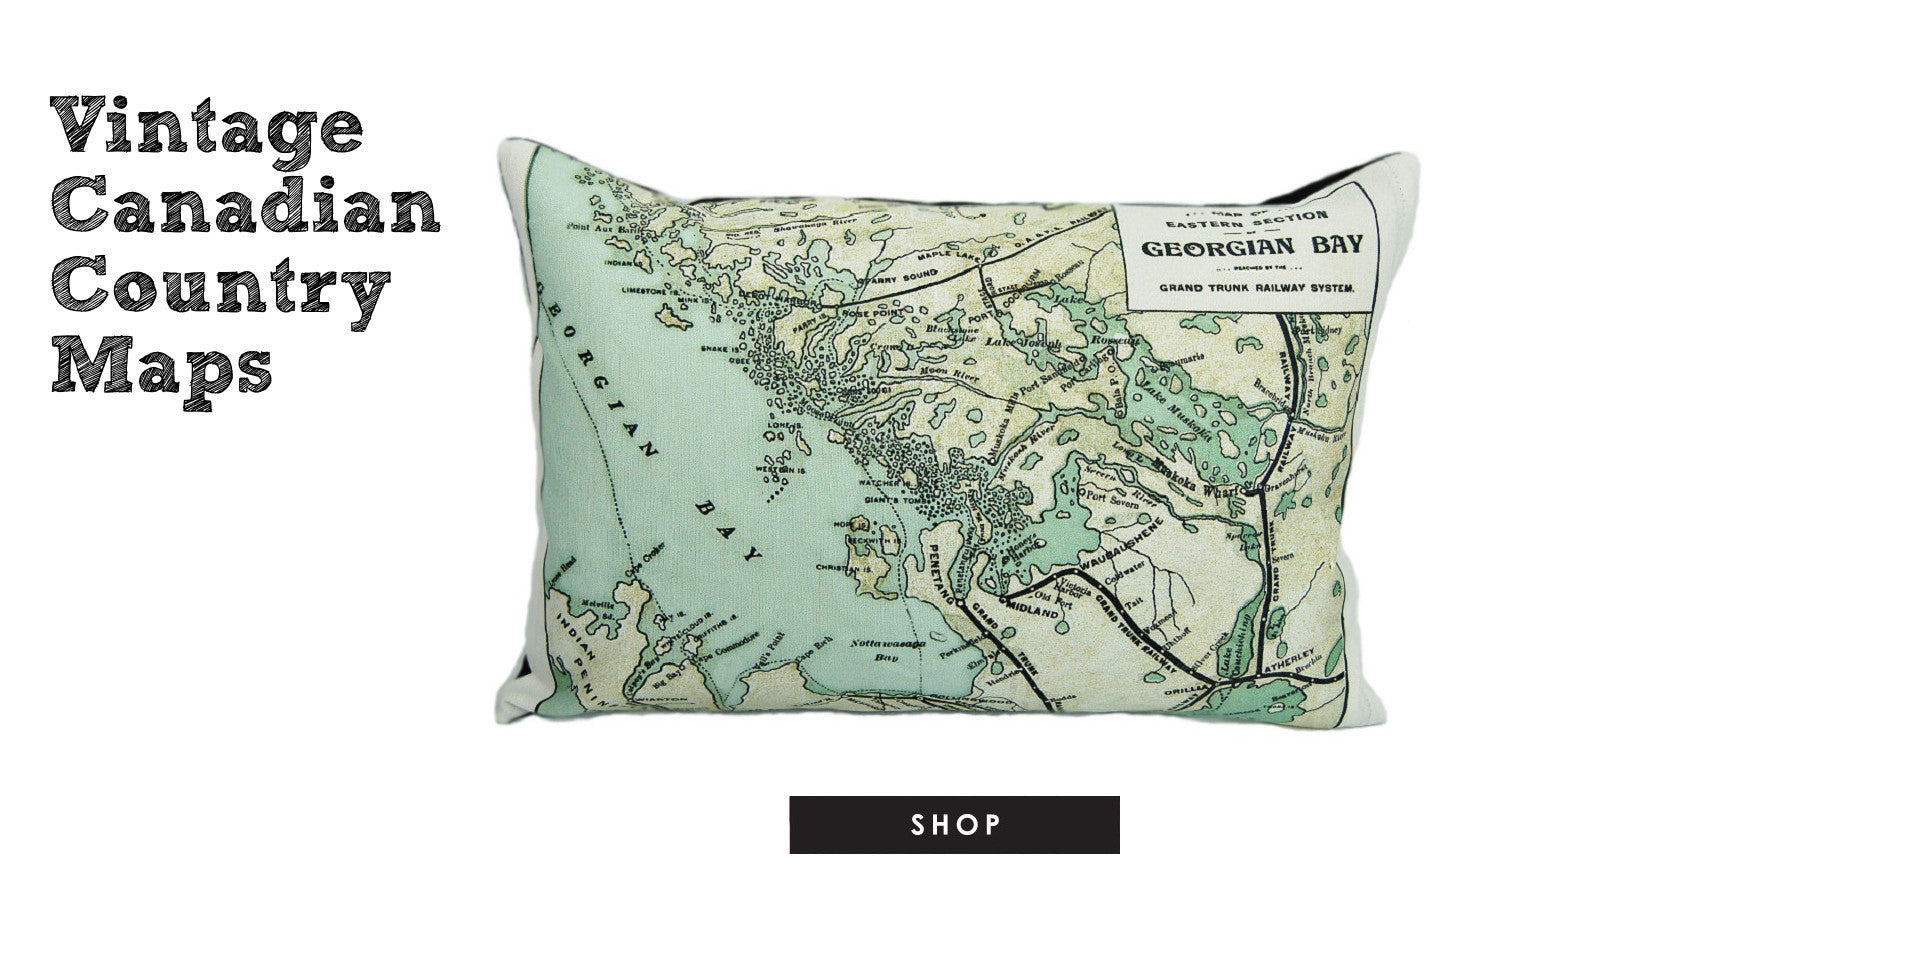 County Cupboard - Vintage Canadian Map Pillows and Tea Towels